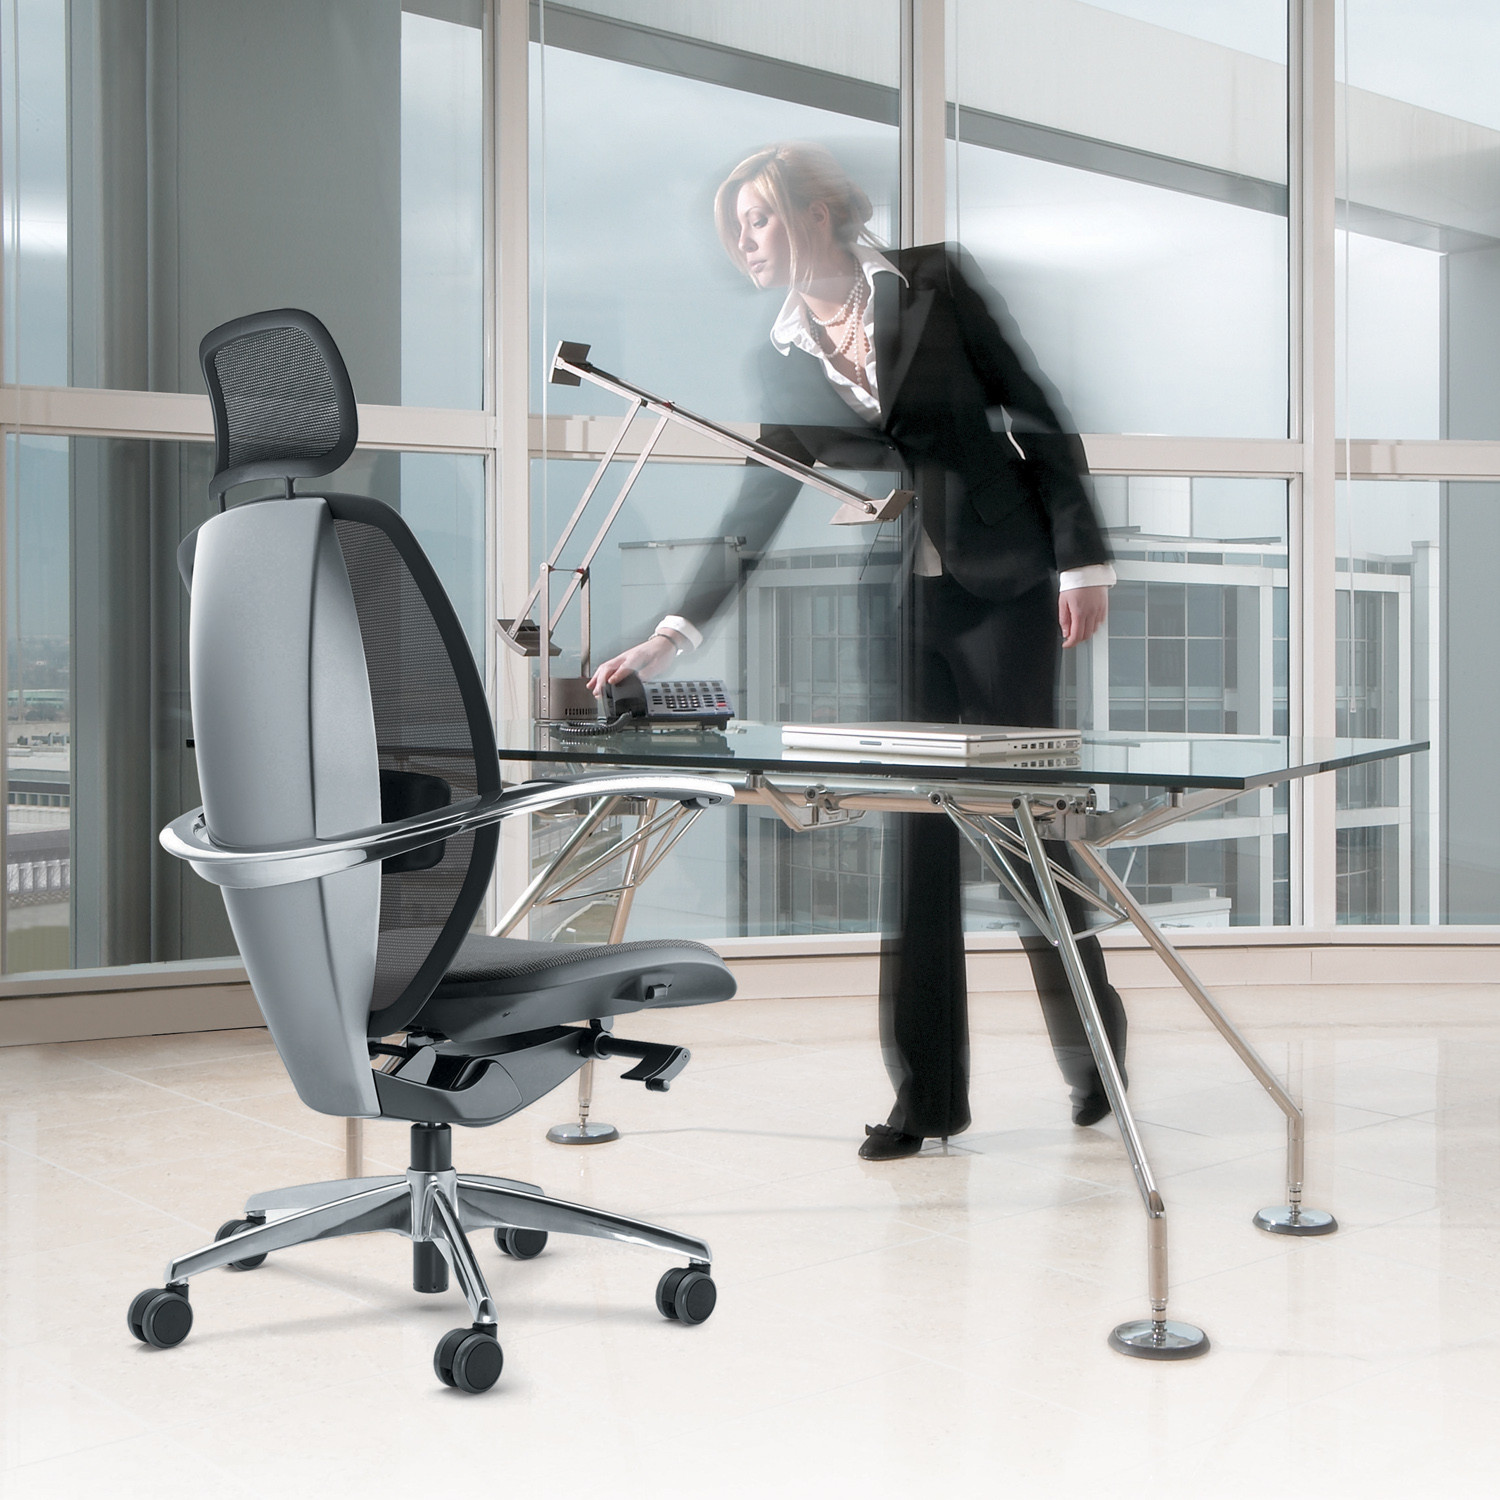 Ares Line Xten Executive Office Chair